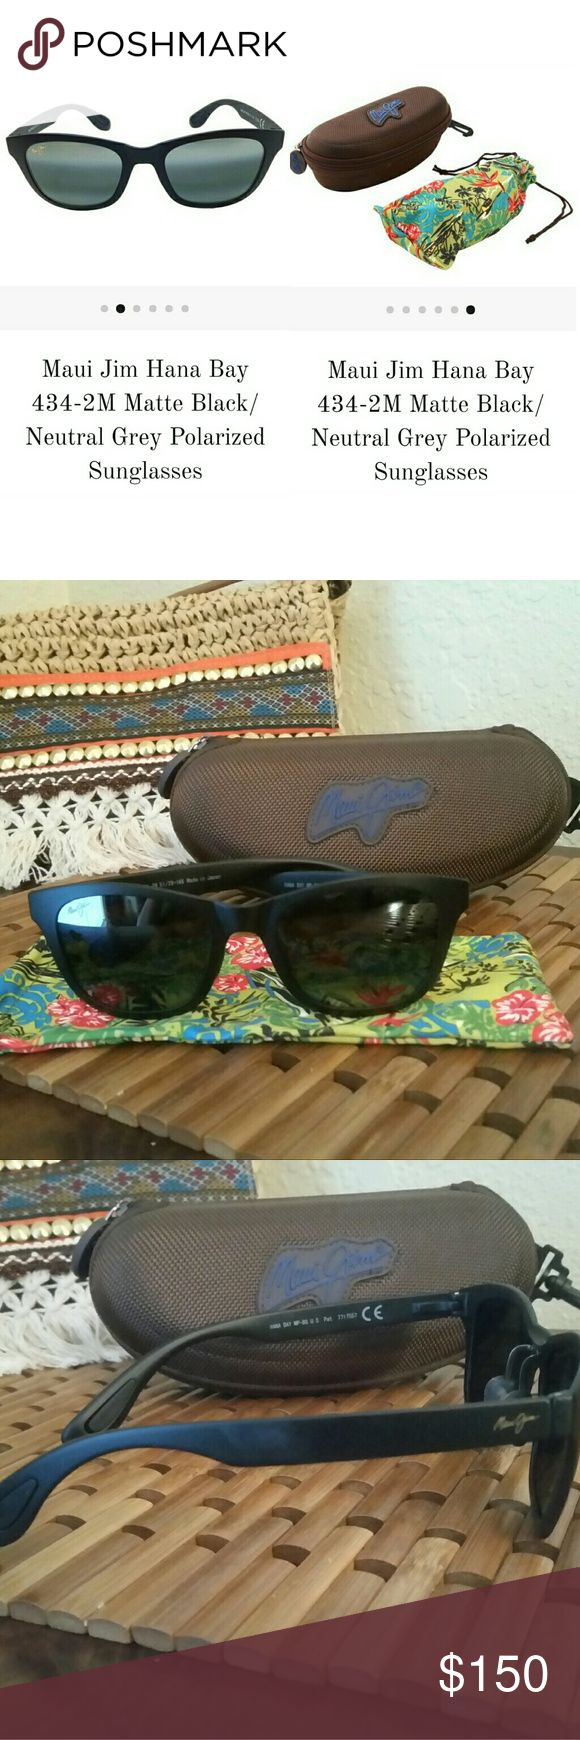 100% NEW & Authentic Maui Jim Polarized Sunglasses BRAND NEW, PERFECT CONDITION, NEVER WORN Moving and getting rid of extras.   100% Authentic Maui Jim Sunglasses Model Name : Hana Bay Color Code: 434-02 Frame Color: Matte Black Frame Material: Nylon Lens Color : Neutral Grey Lens Material: Plastic Polarized : Yes Protection: 100% UV  INCLUDES  Maui Jim Sunglasses Maui Jim Case Maui Jim Cleaning Cloth Maui Jim Accessories Sunglasses